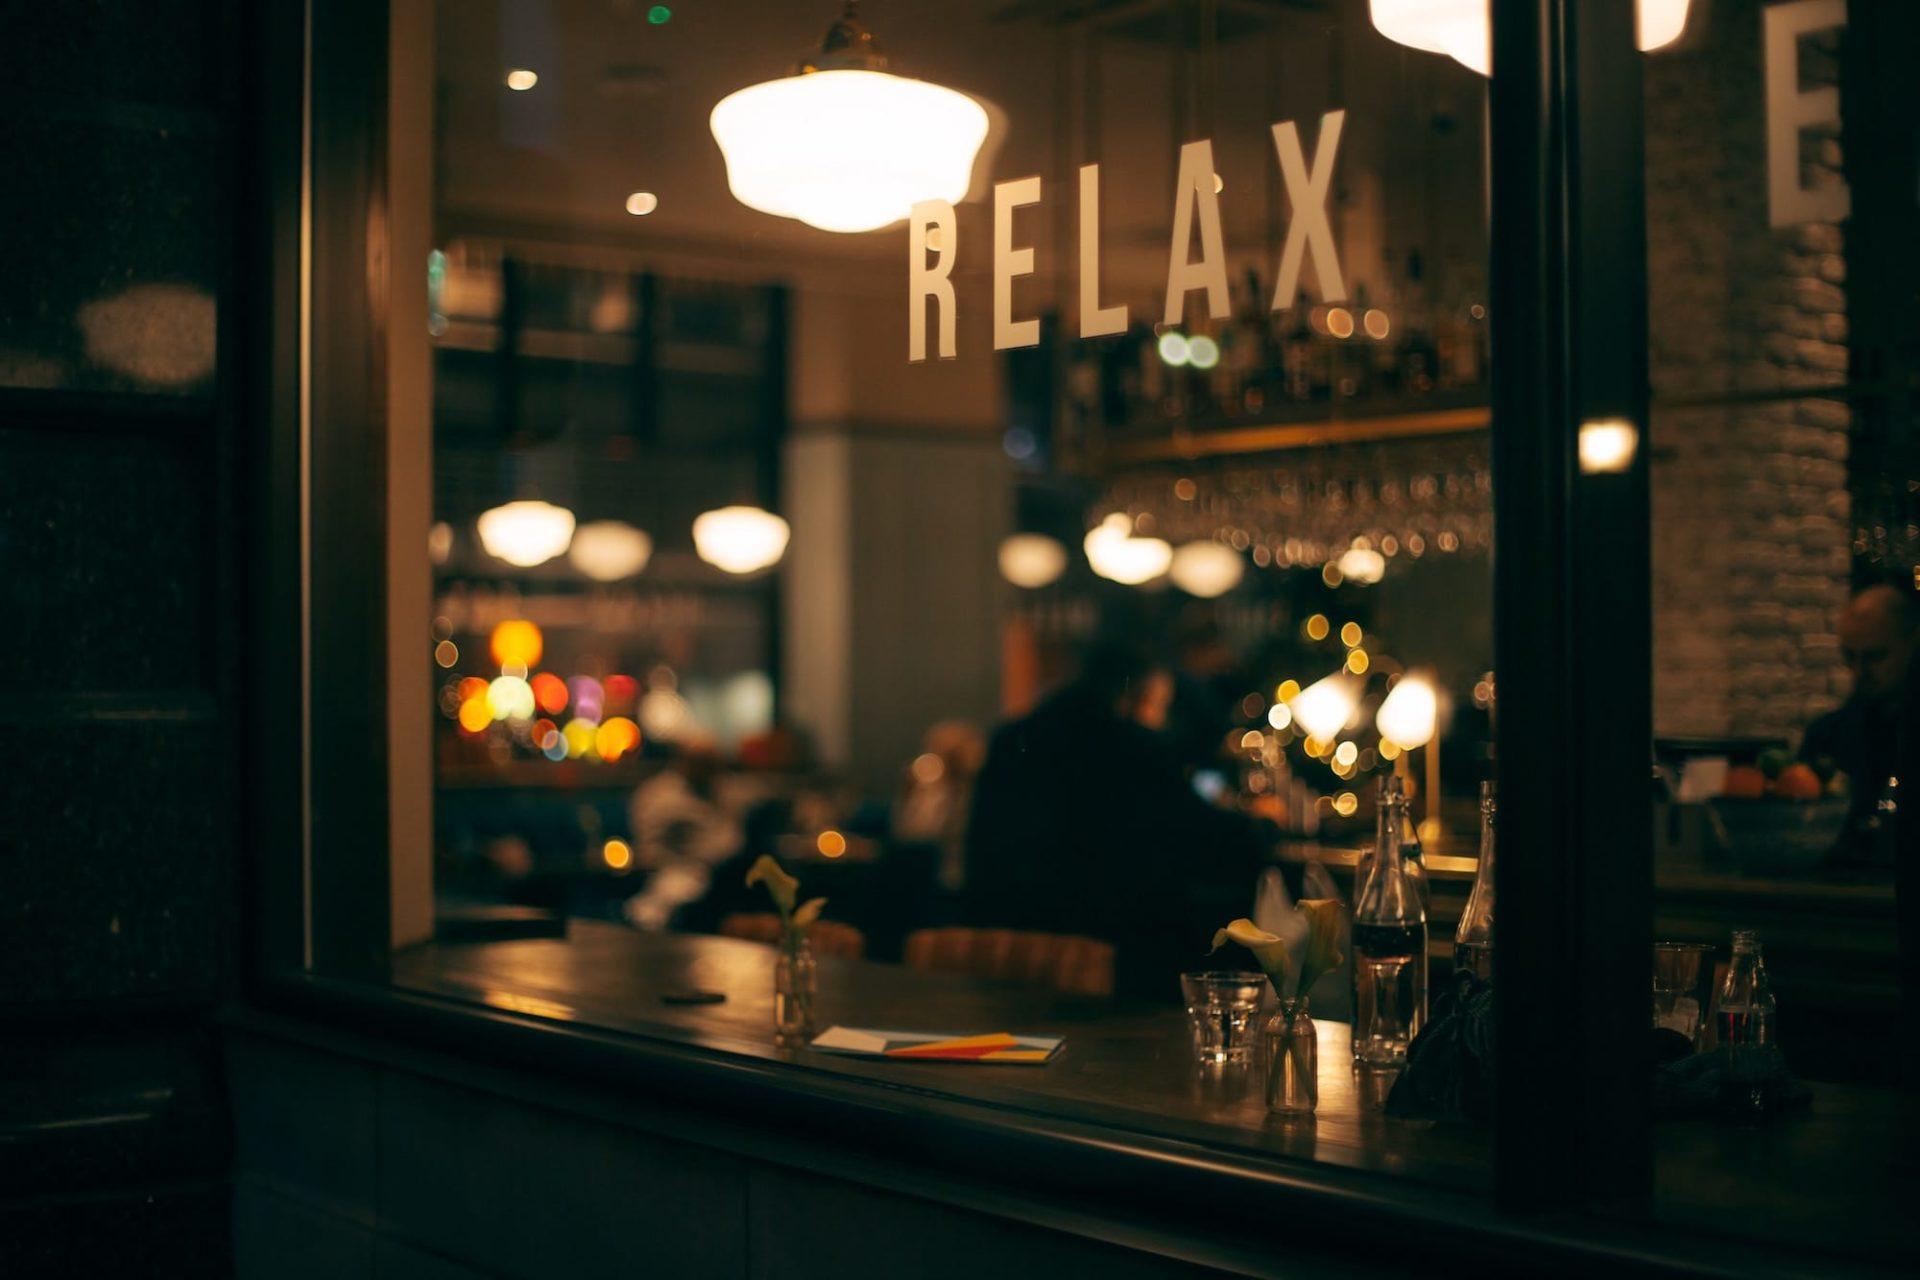 Relax sign coffee shop